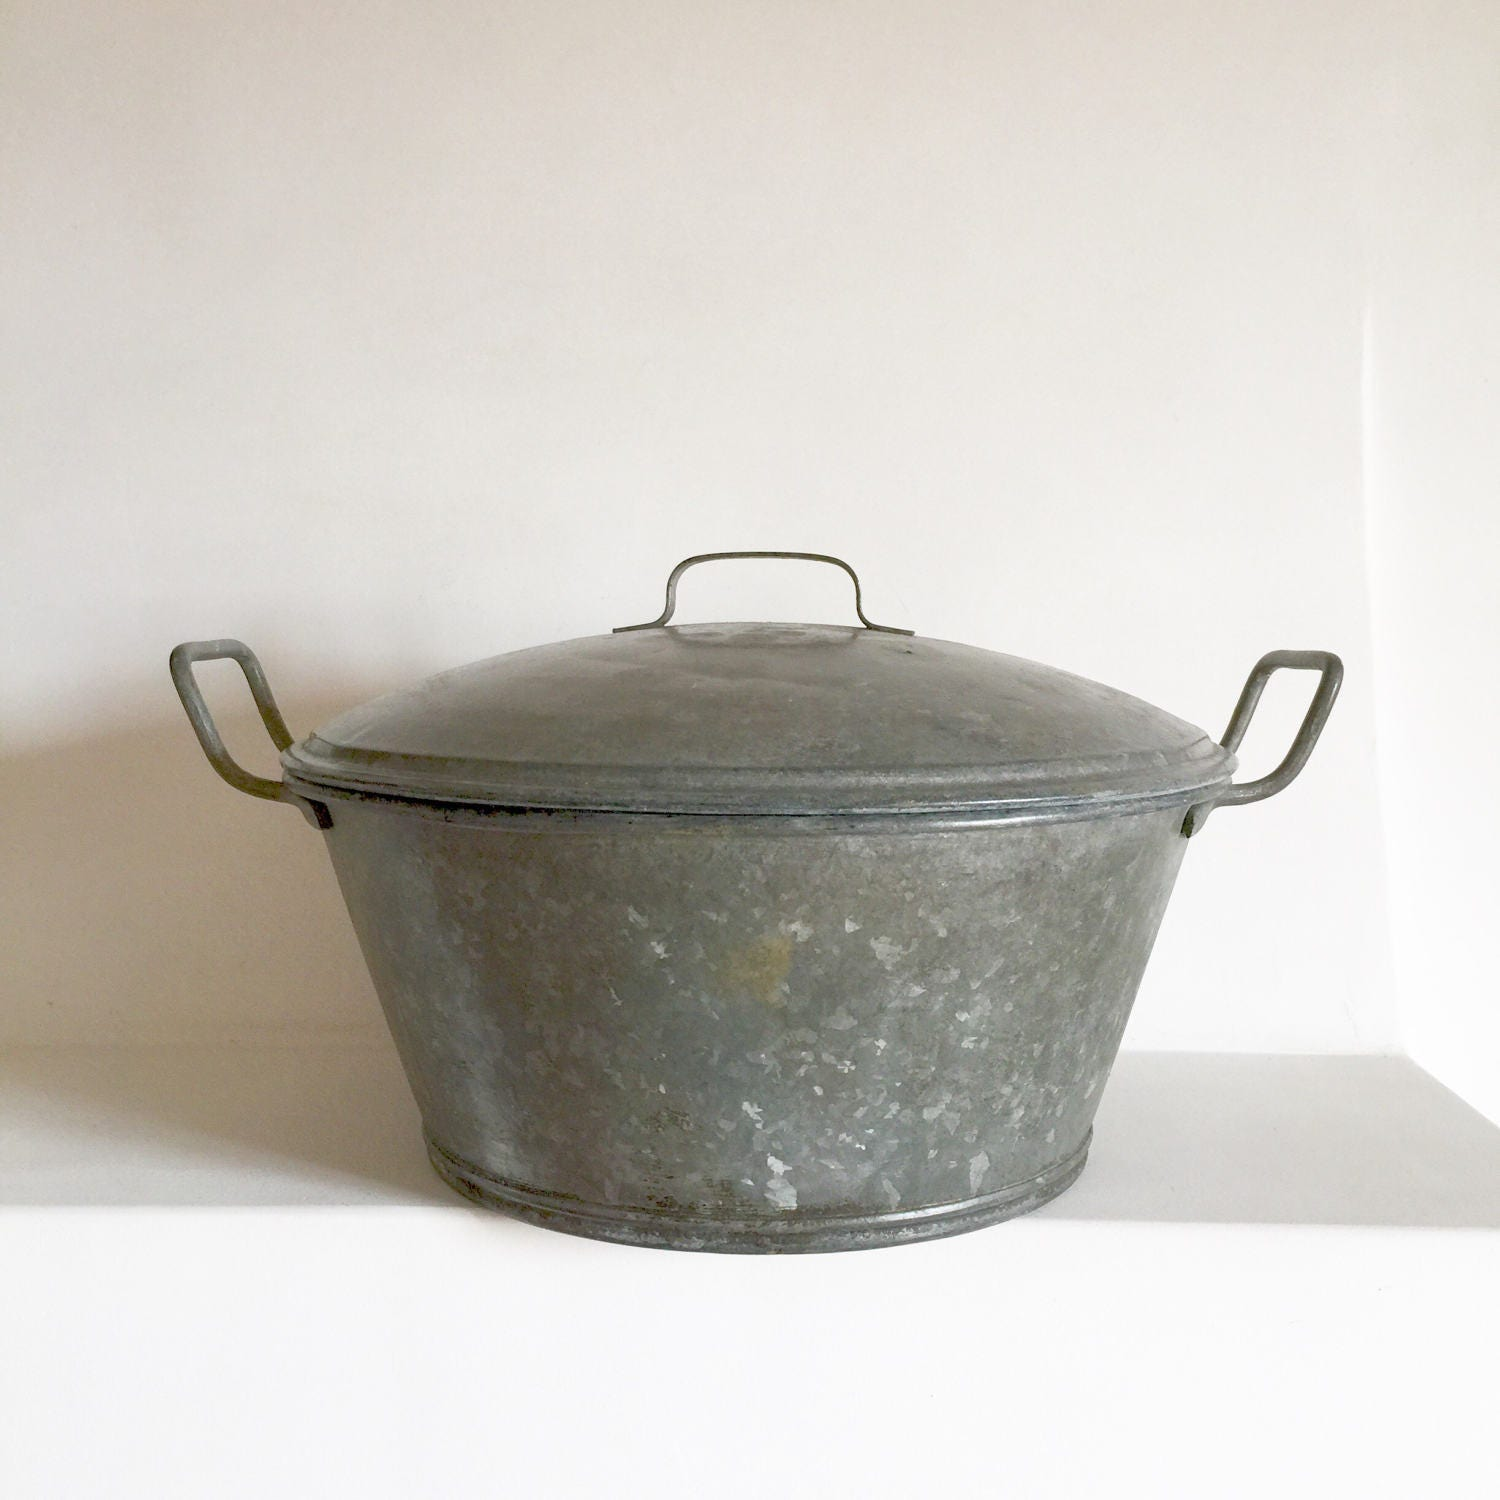 Rustic French Antique Zinc Wash Basin With Lid Galvanized